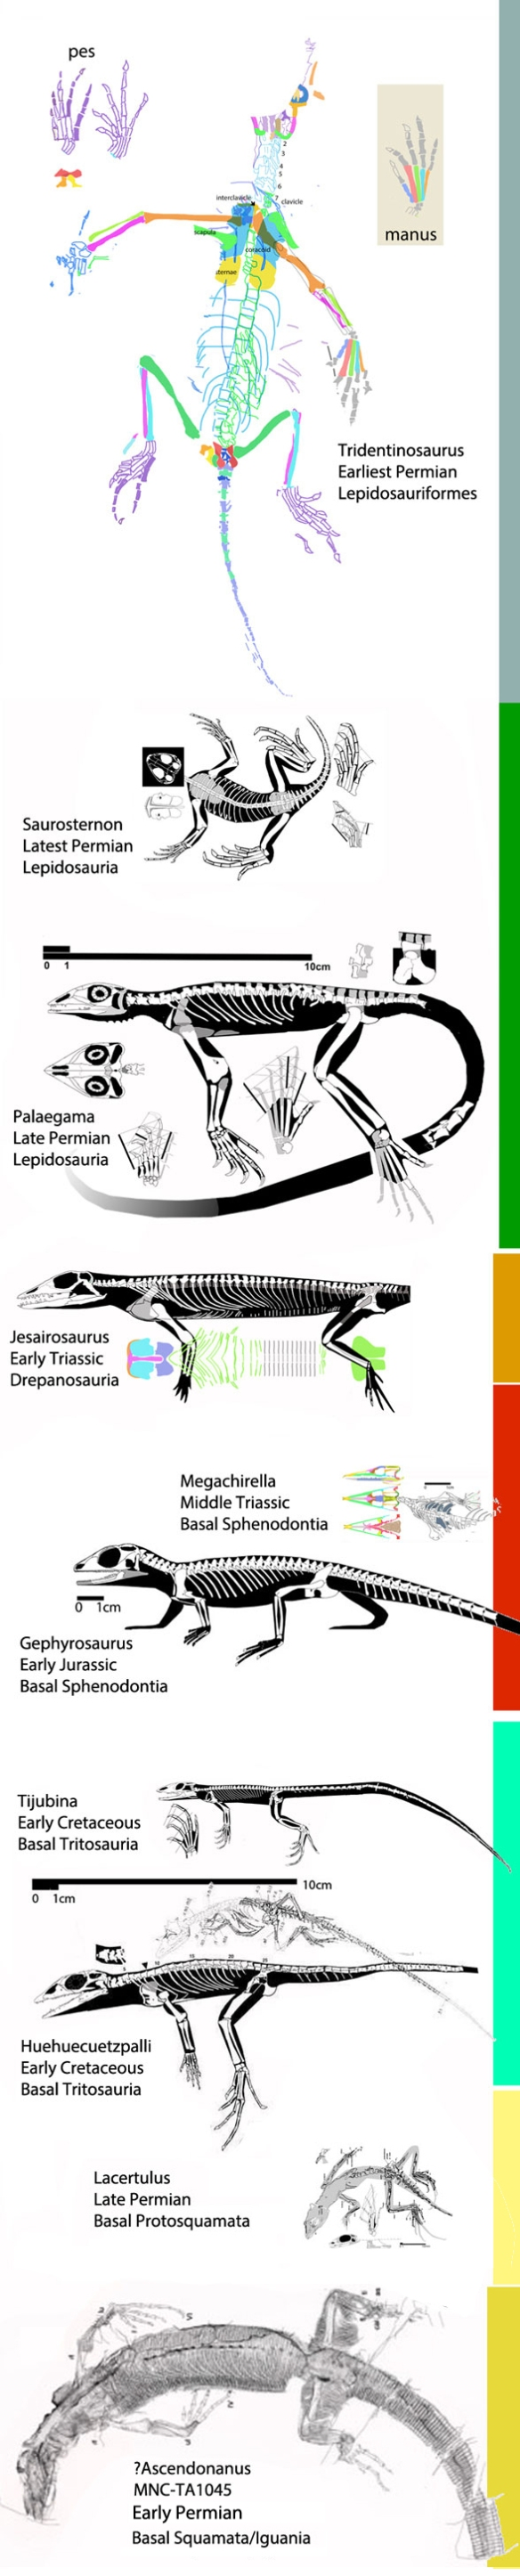 Figure 1. Basal lepidosauriformes to scale from Tridentinosaurus (Earliest Permian) to Huehuecuetzpalli (Early Cretaceous). Subtle differences lump and split these taxa into their various clades.